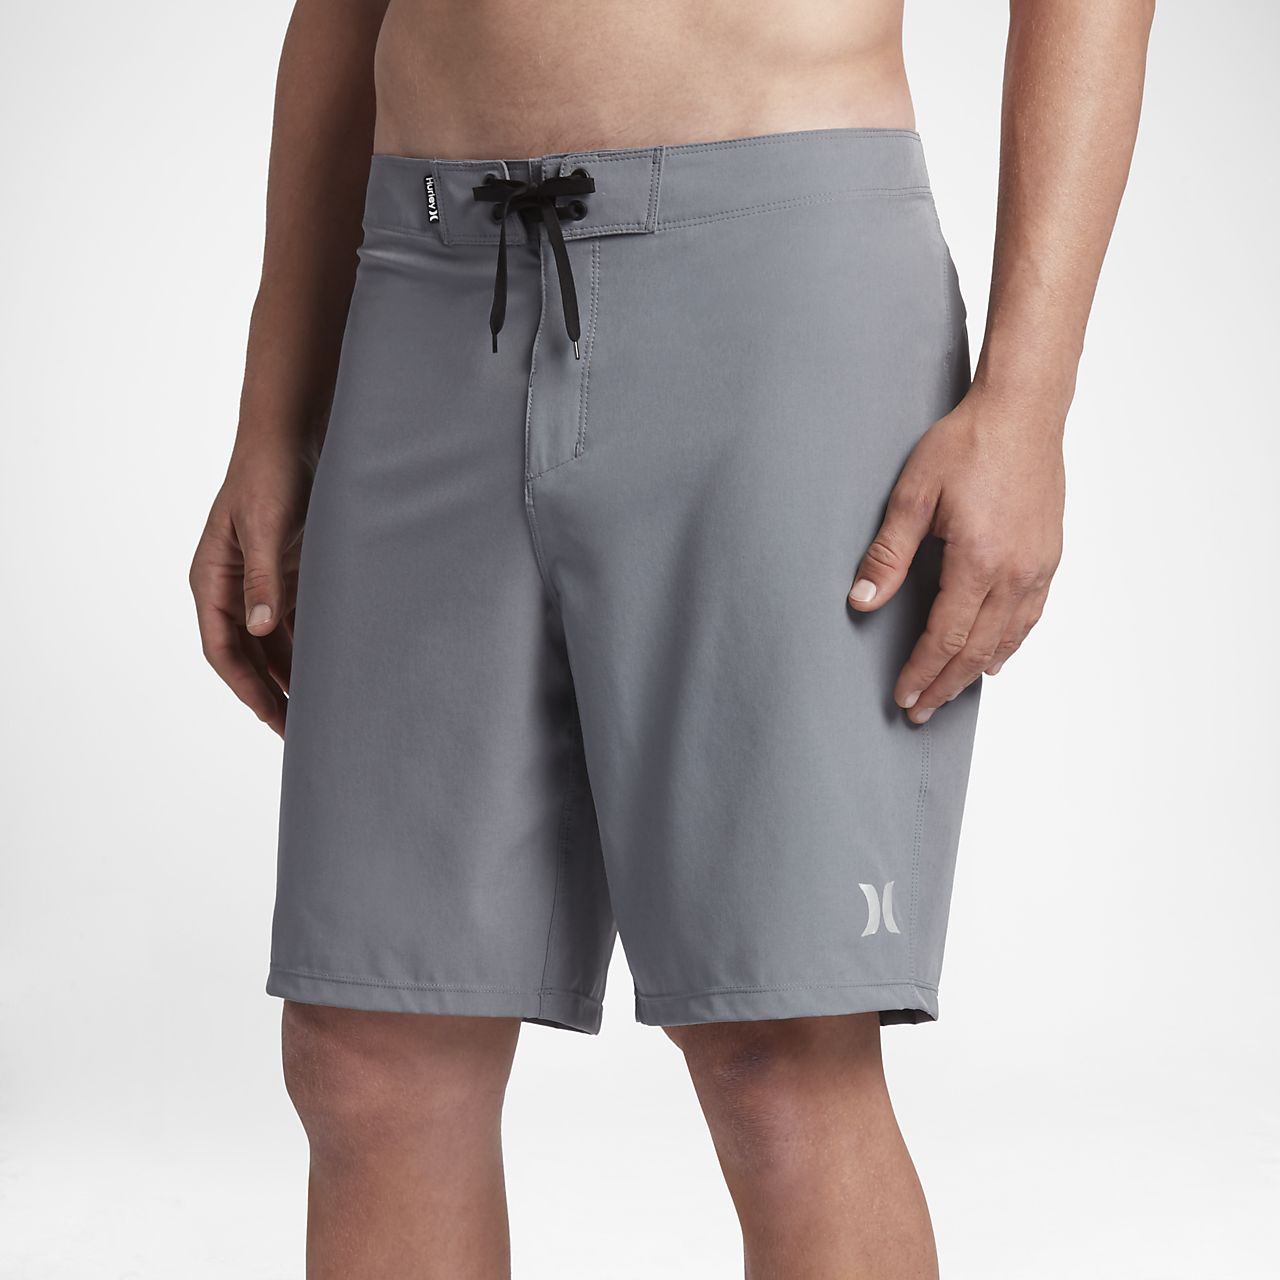 Hurley Phantom One And Only Men's 20